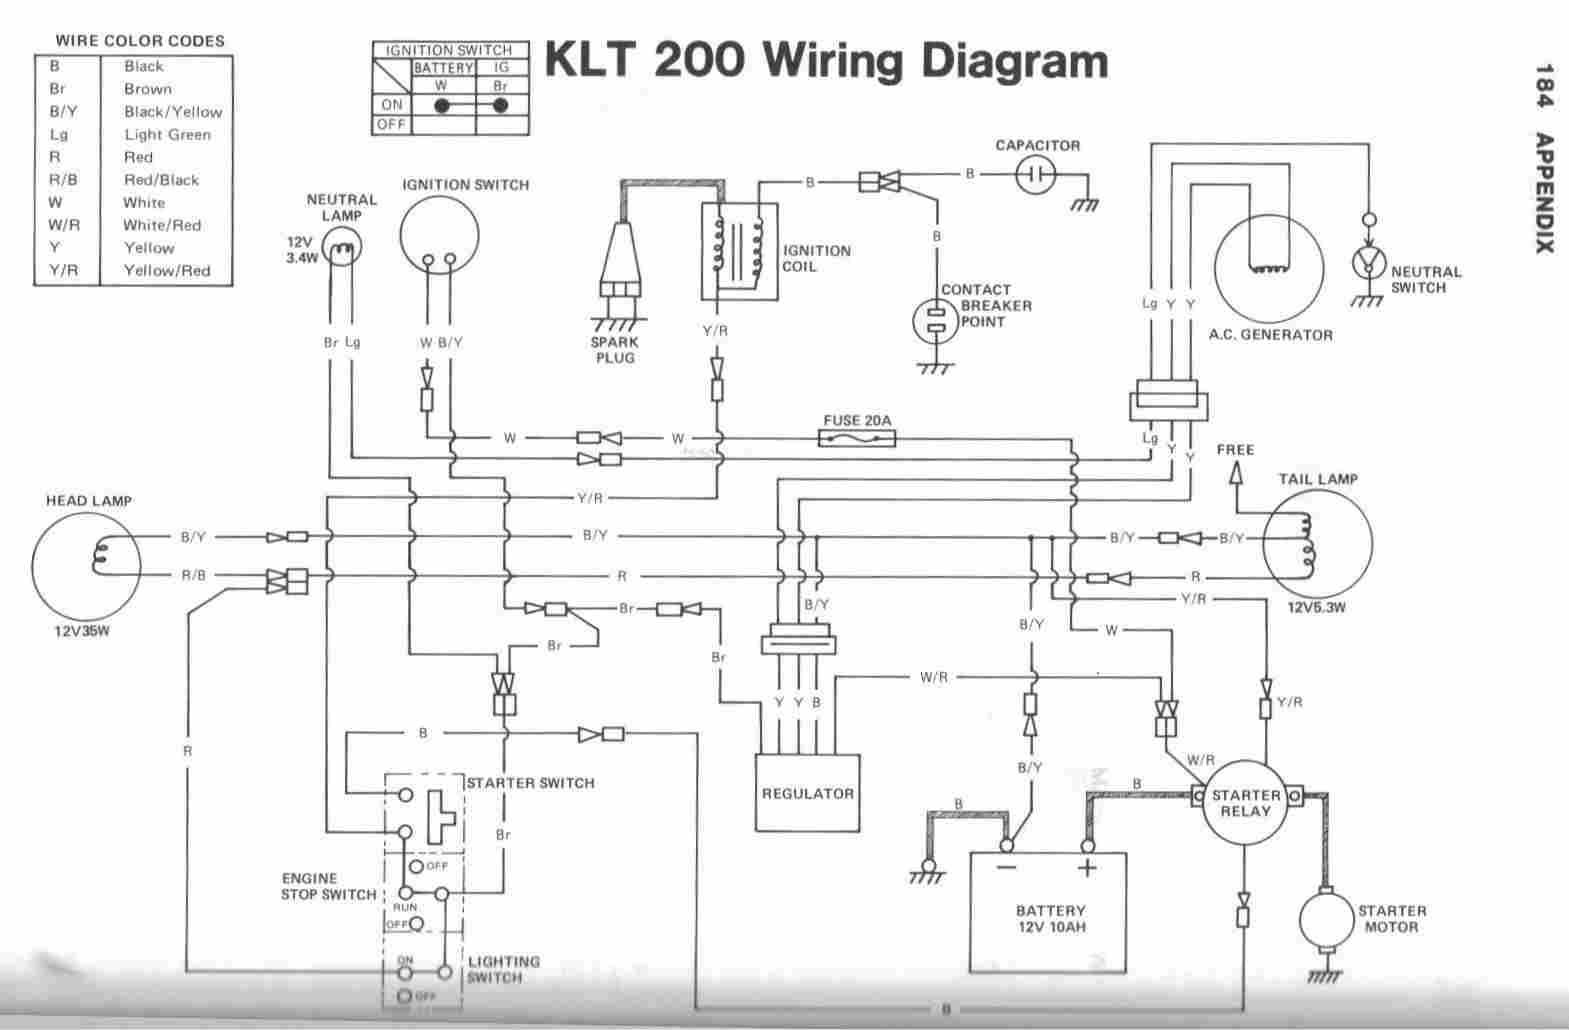 2869034594ce054a636782e5c44b61b4 residential electrical wiring diagrams pdf easy routing cool electrical wiring diagrams at gsmx.co